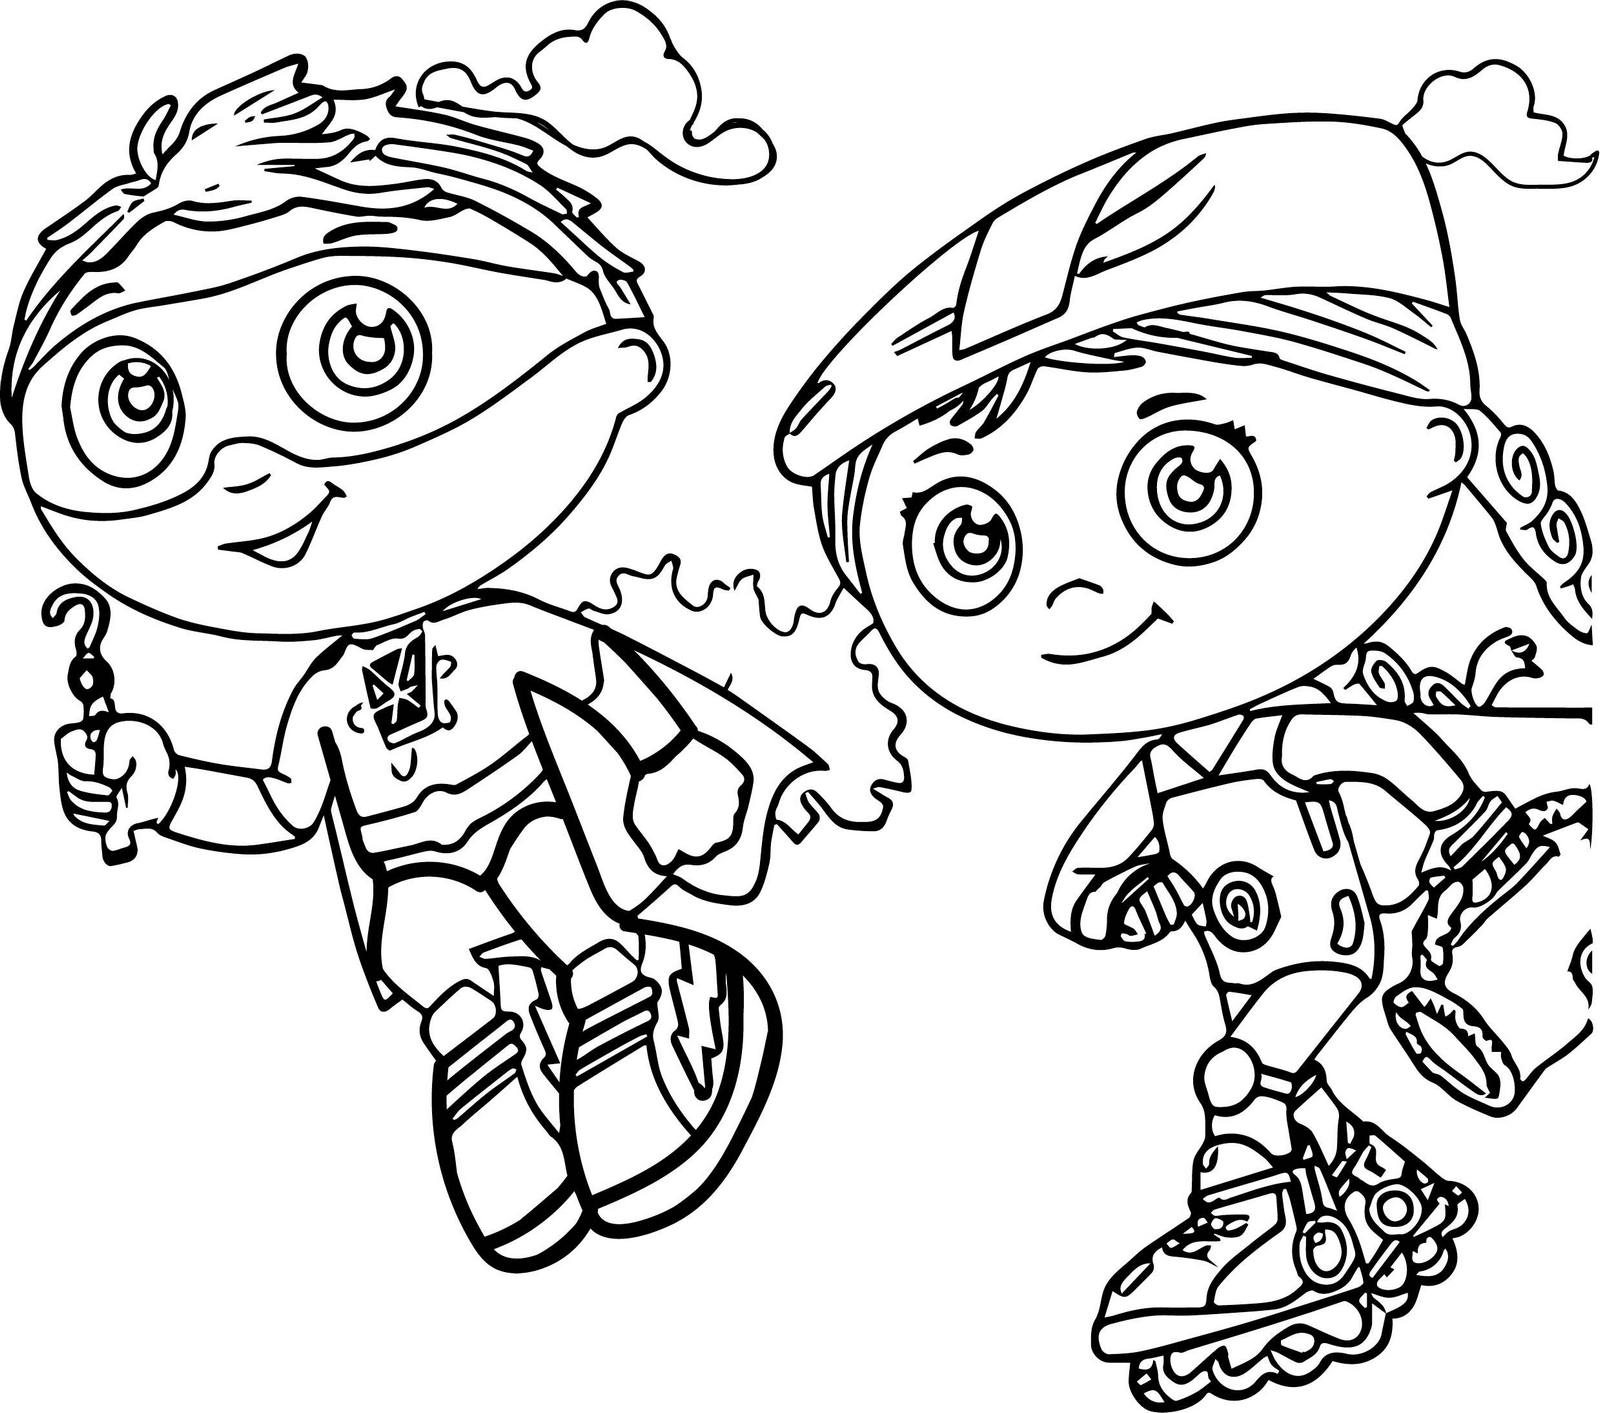 Super why coloring pages wonder red ~ super why and wonder red coloring sheet